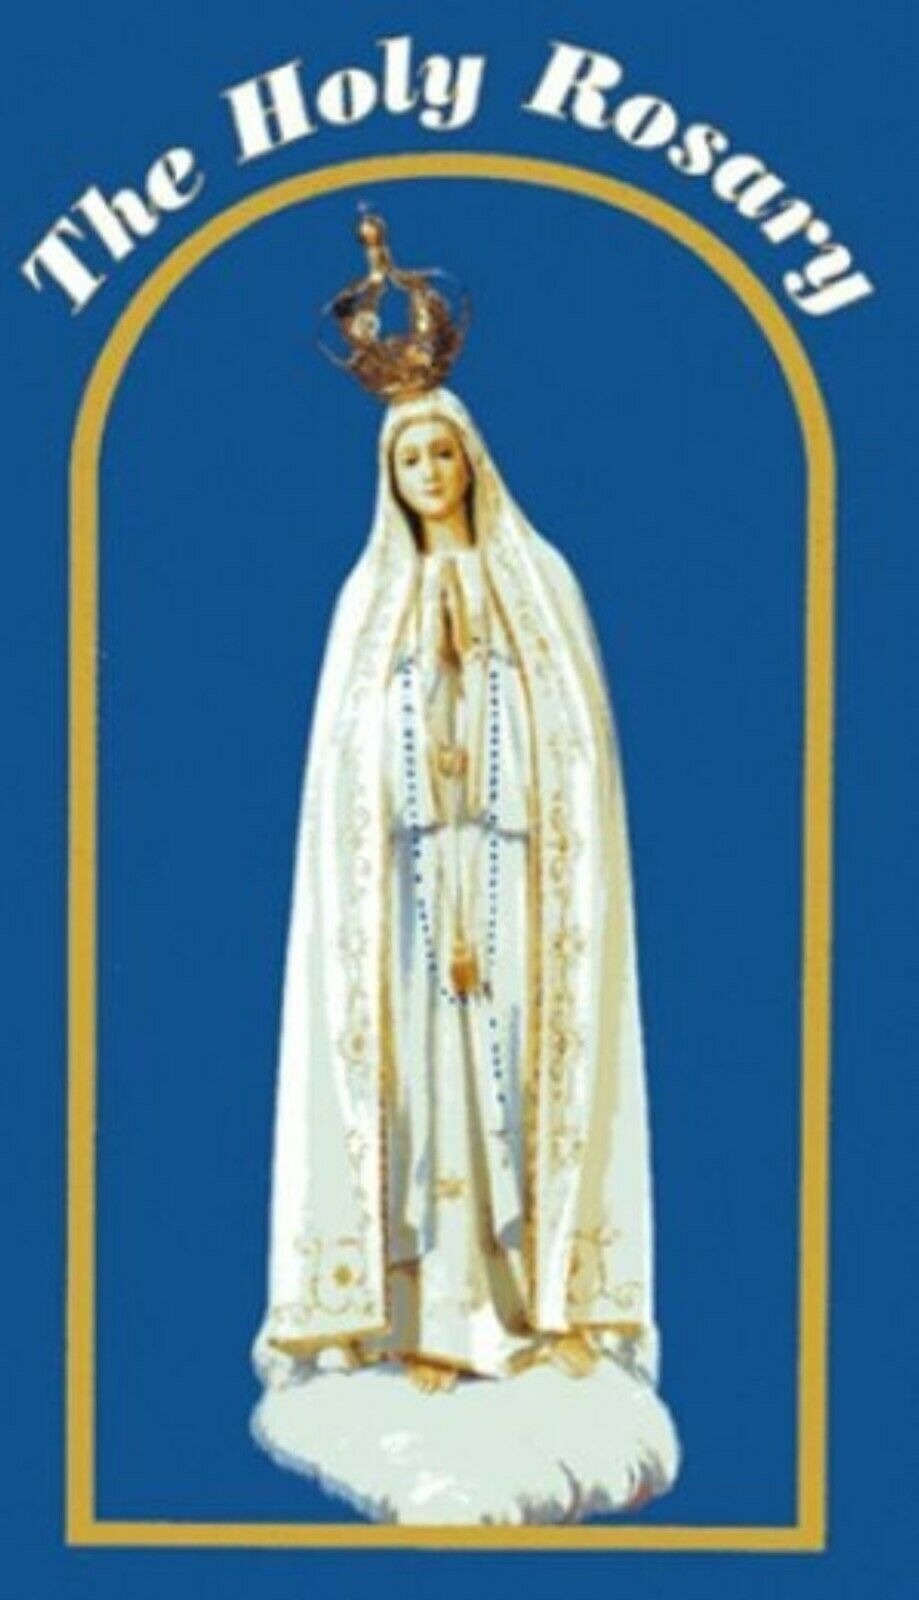 The Holy Rosary - A Beautiful Full Color Guide Booklet to Pray the Rosary